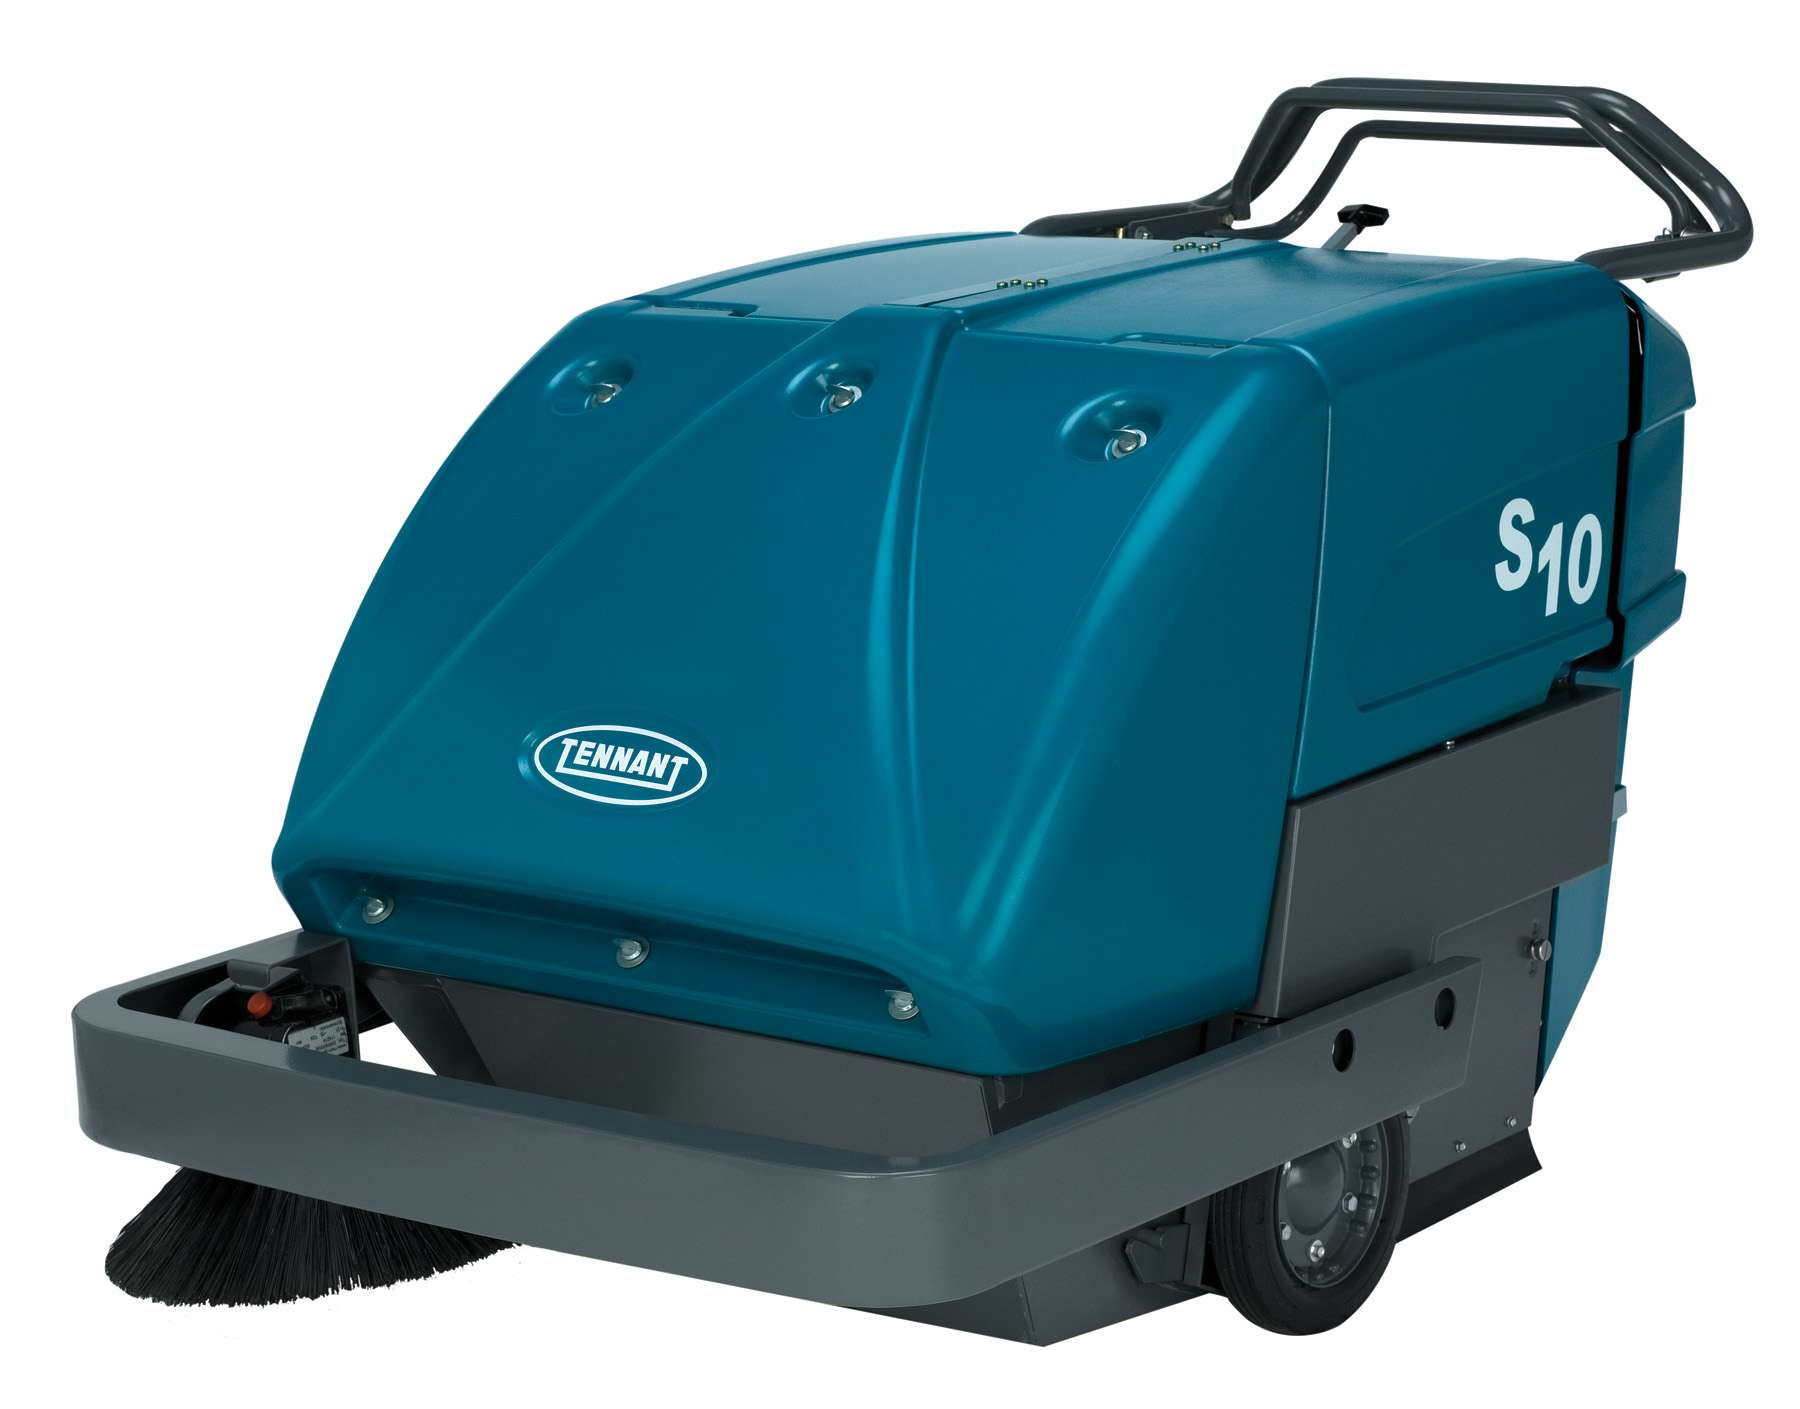 Tennant S10 Industrial Sweeper Powervac Cleaning